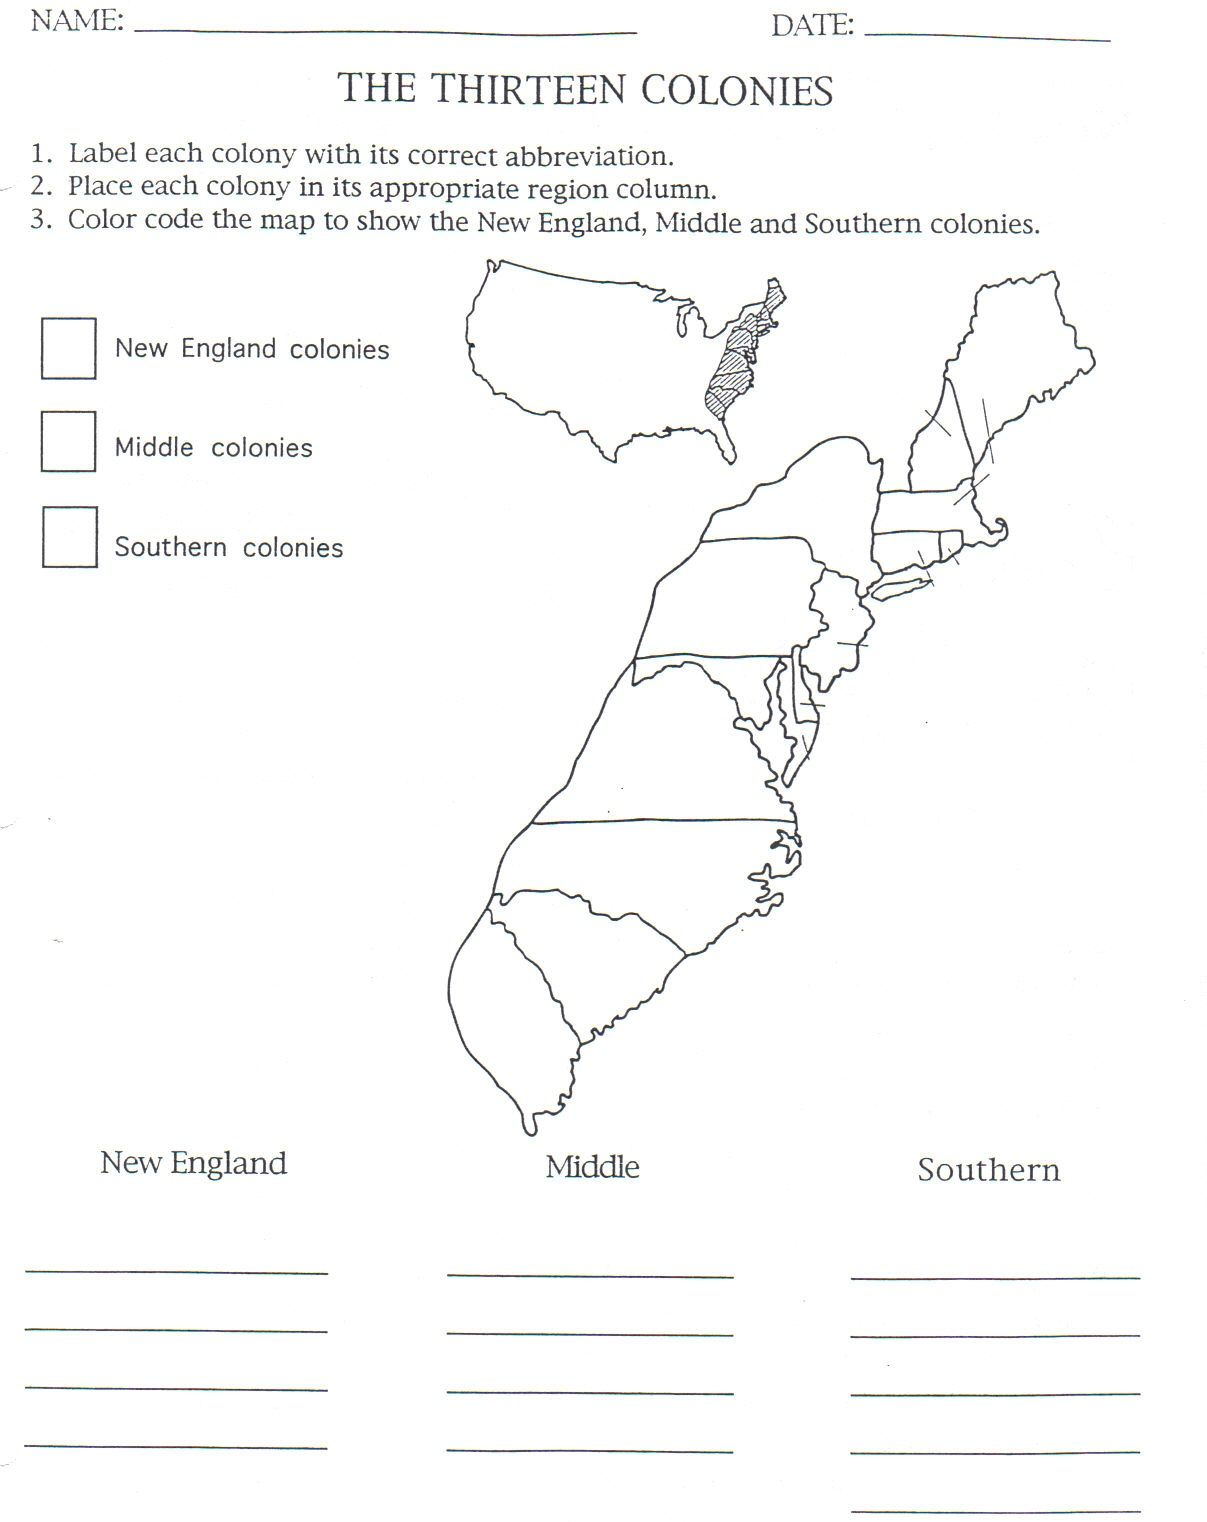 Worksheets 13 Colonies Worksheets 13 colonies map to color and label although notice that they have maine listed as